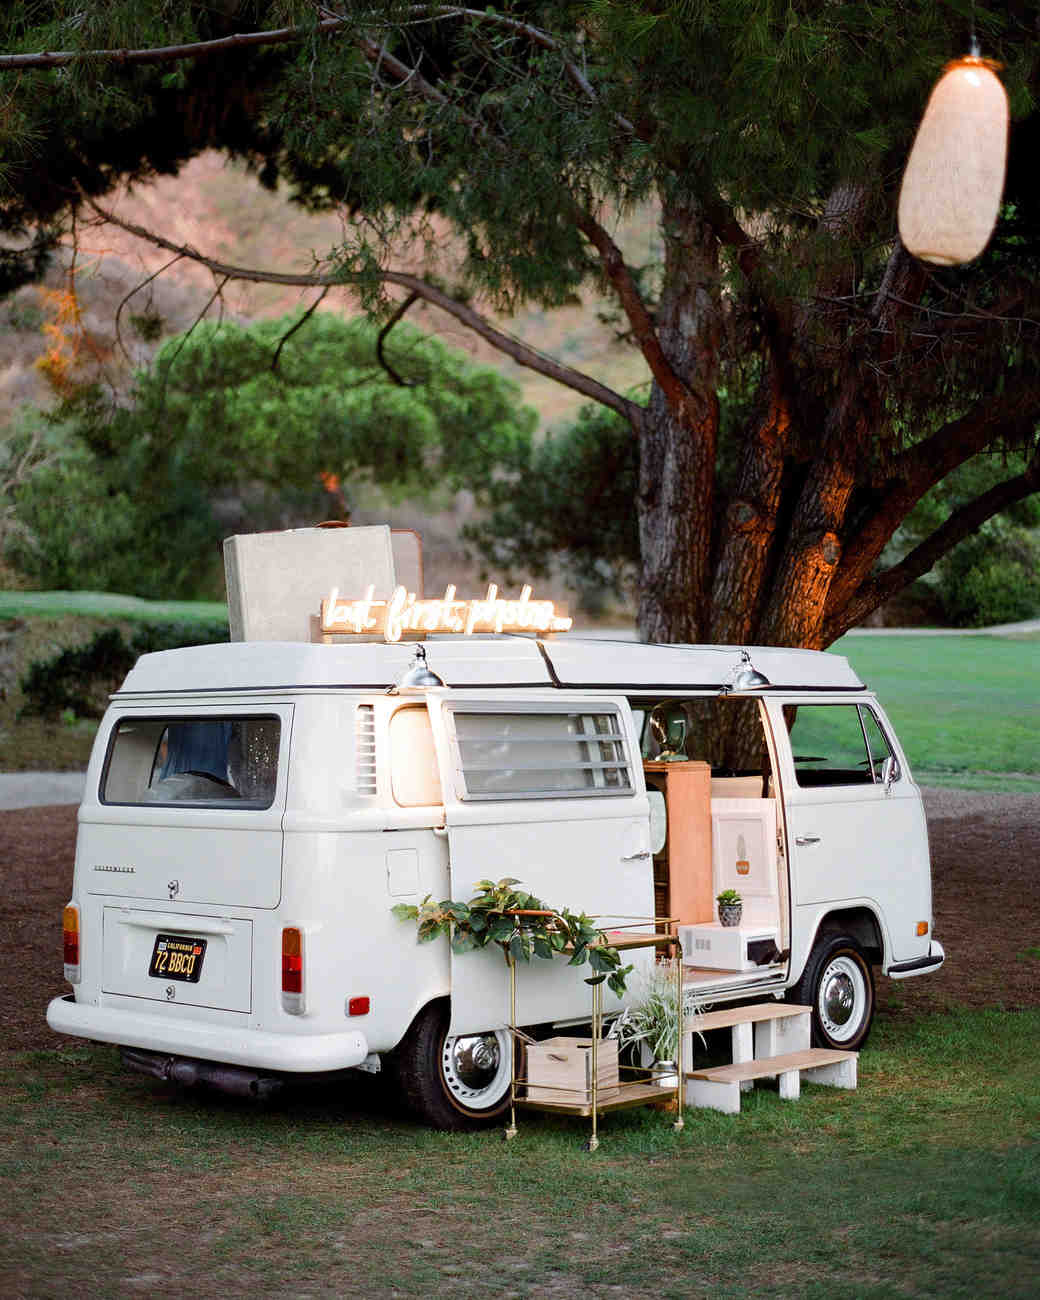 alex drew california wedding photobooth van